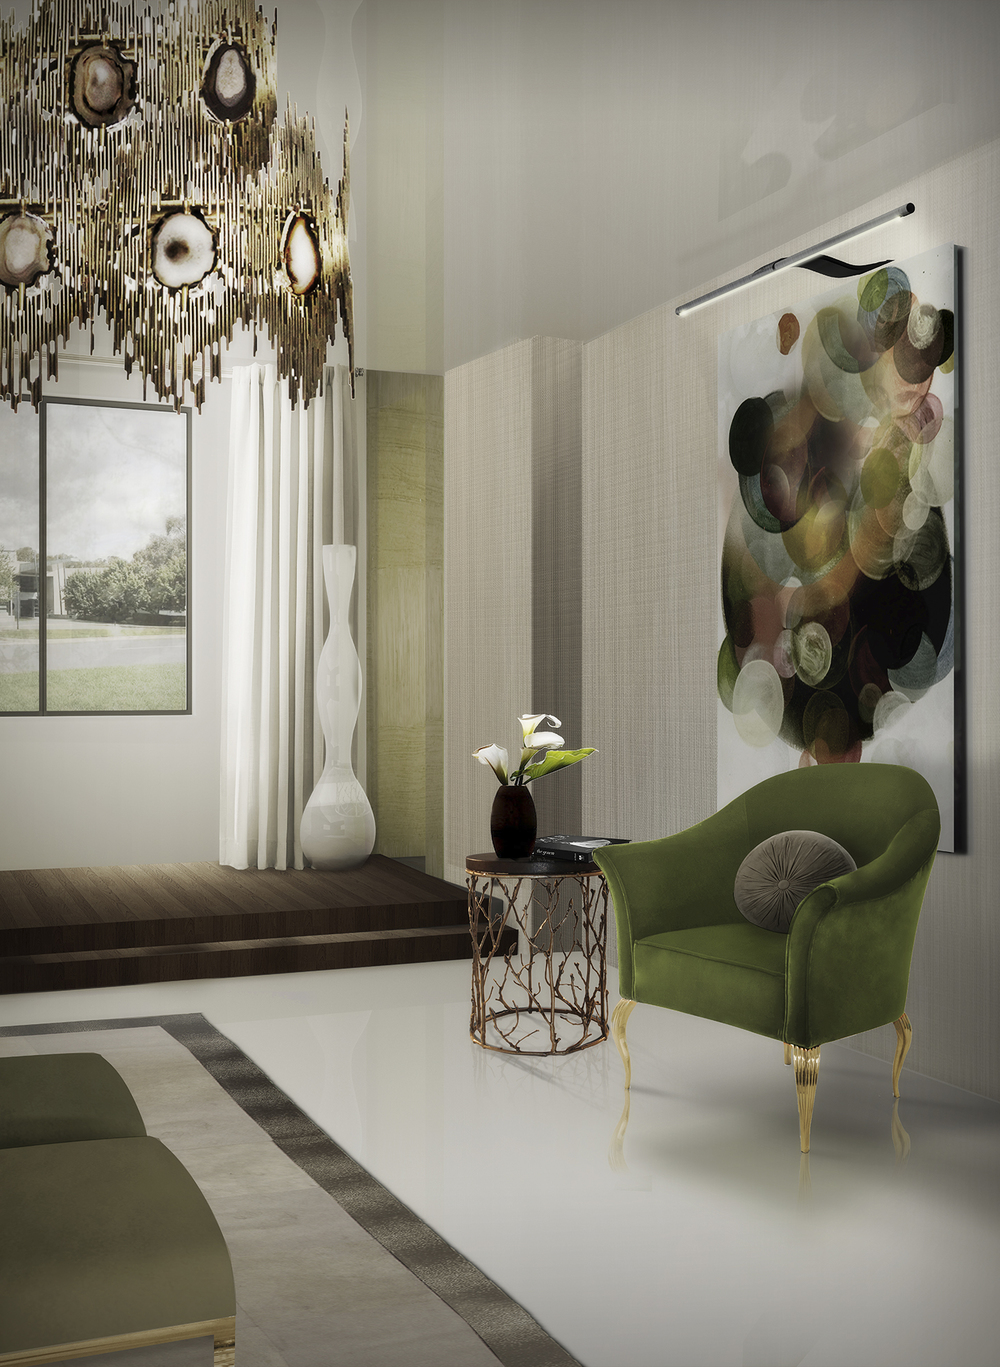 vivre-2rings-chandelier-mimi-chair-kiki-side-table-koket-projects.jpg